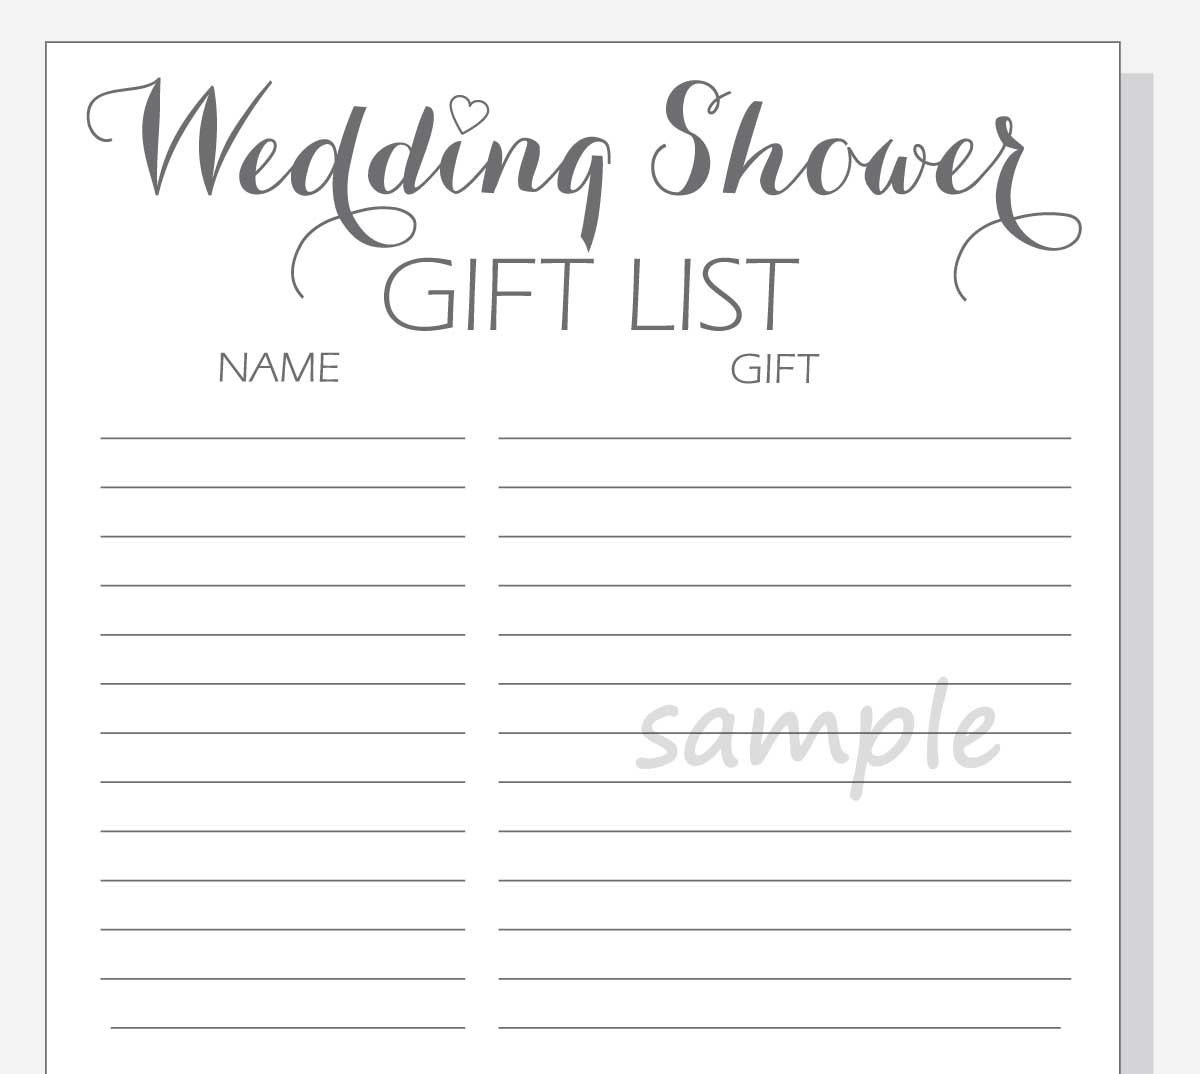 What To Put On A Wedding Gift List: DIY Wedding Shower Gift List Printable Calligraphy Script